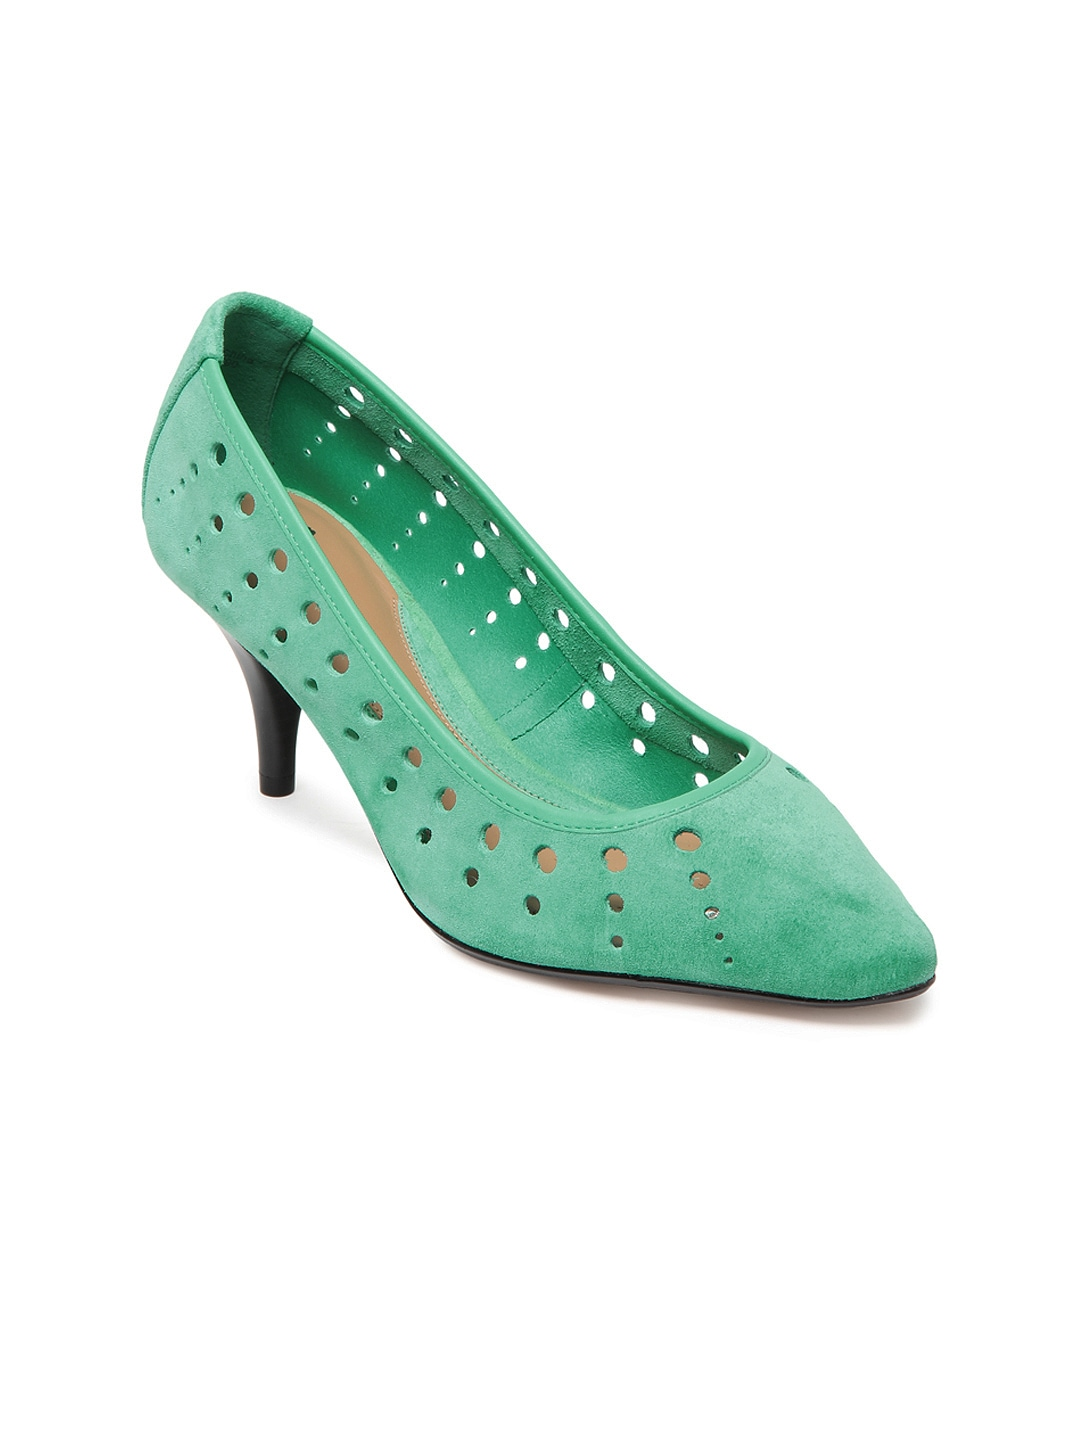 Clarks Women Green Ancient Myth Leather Heels image